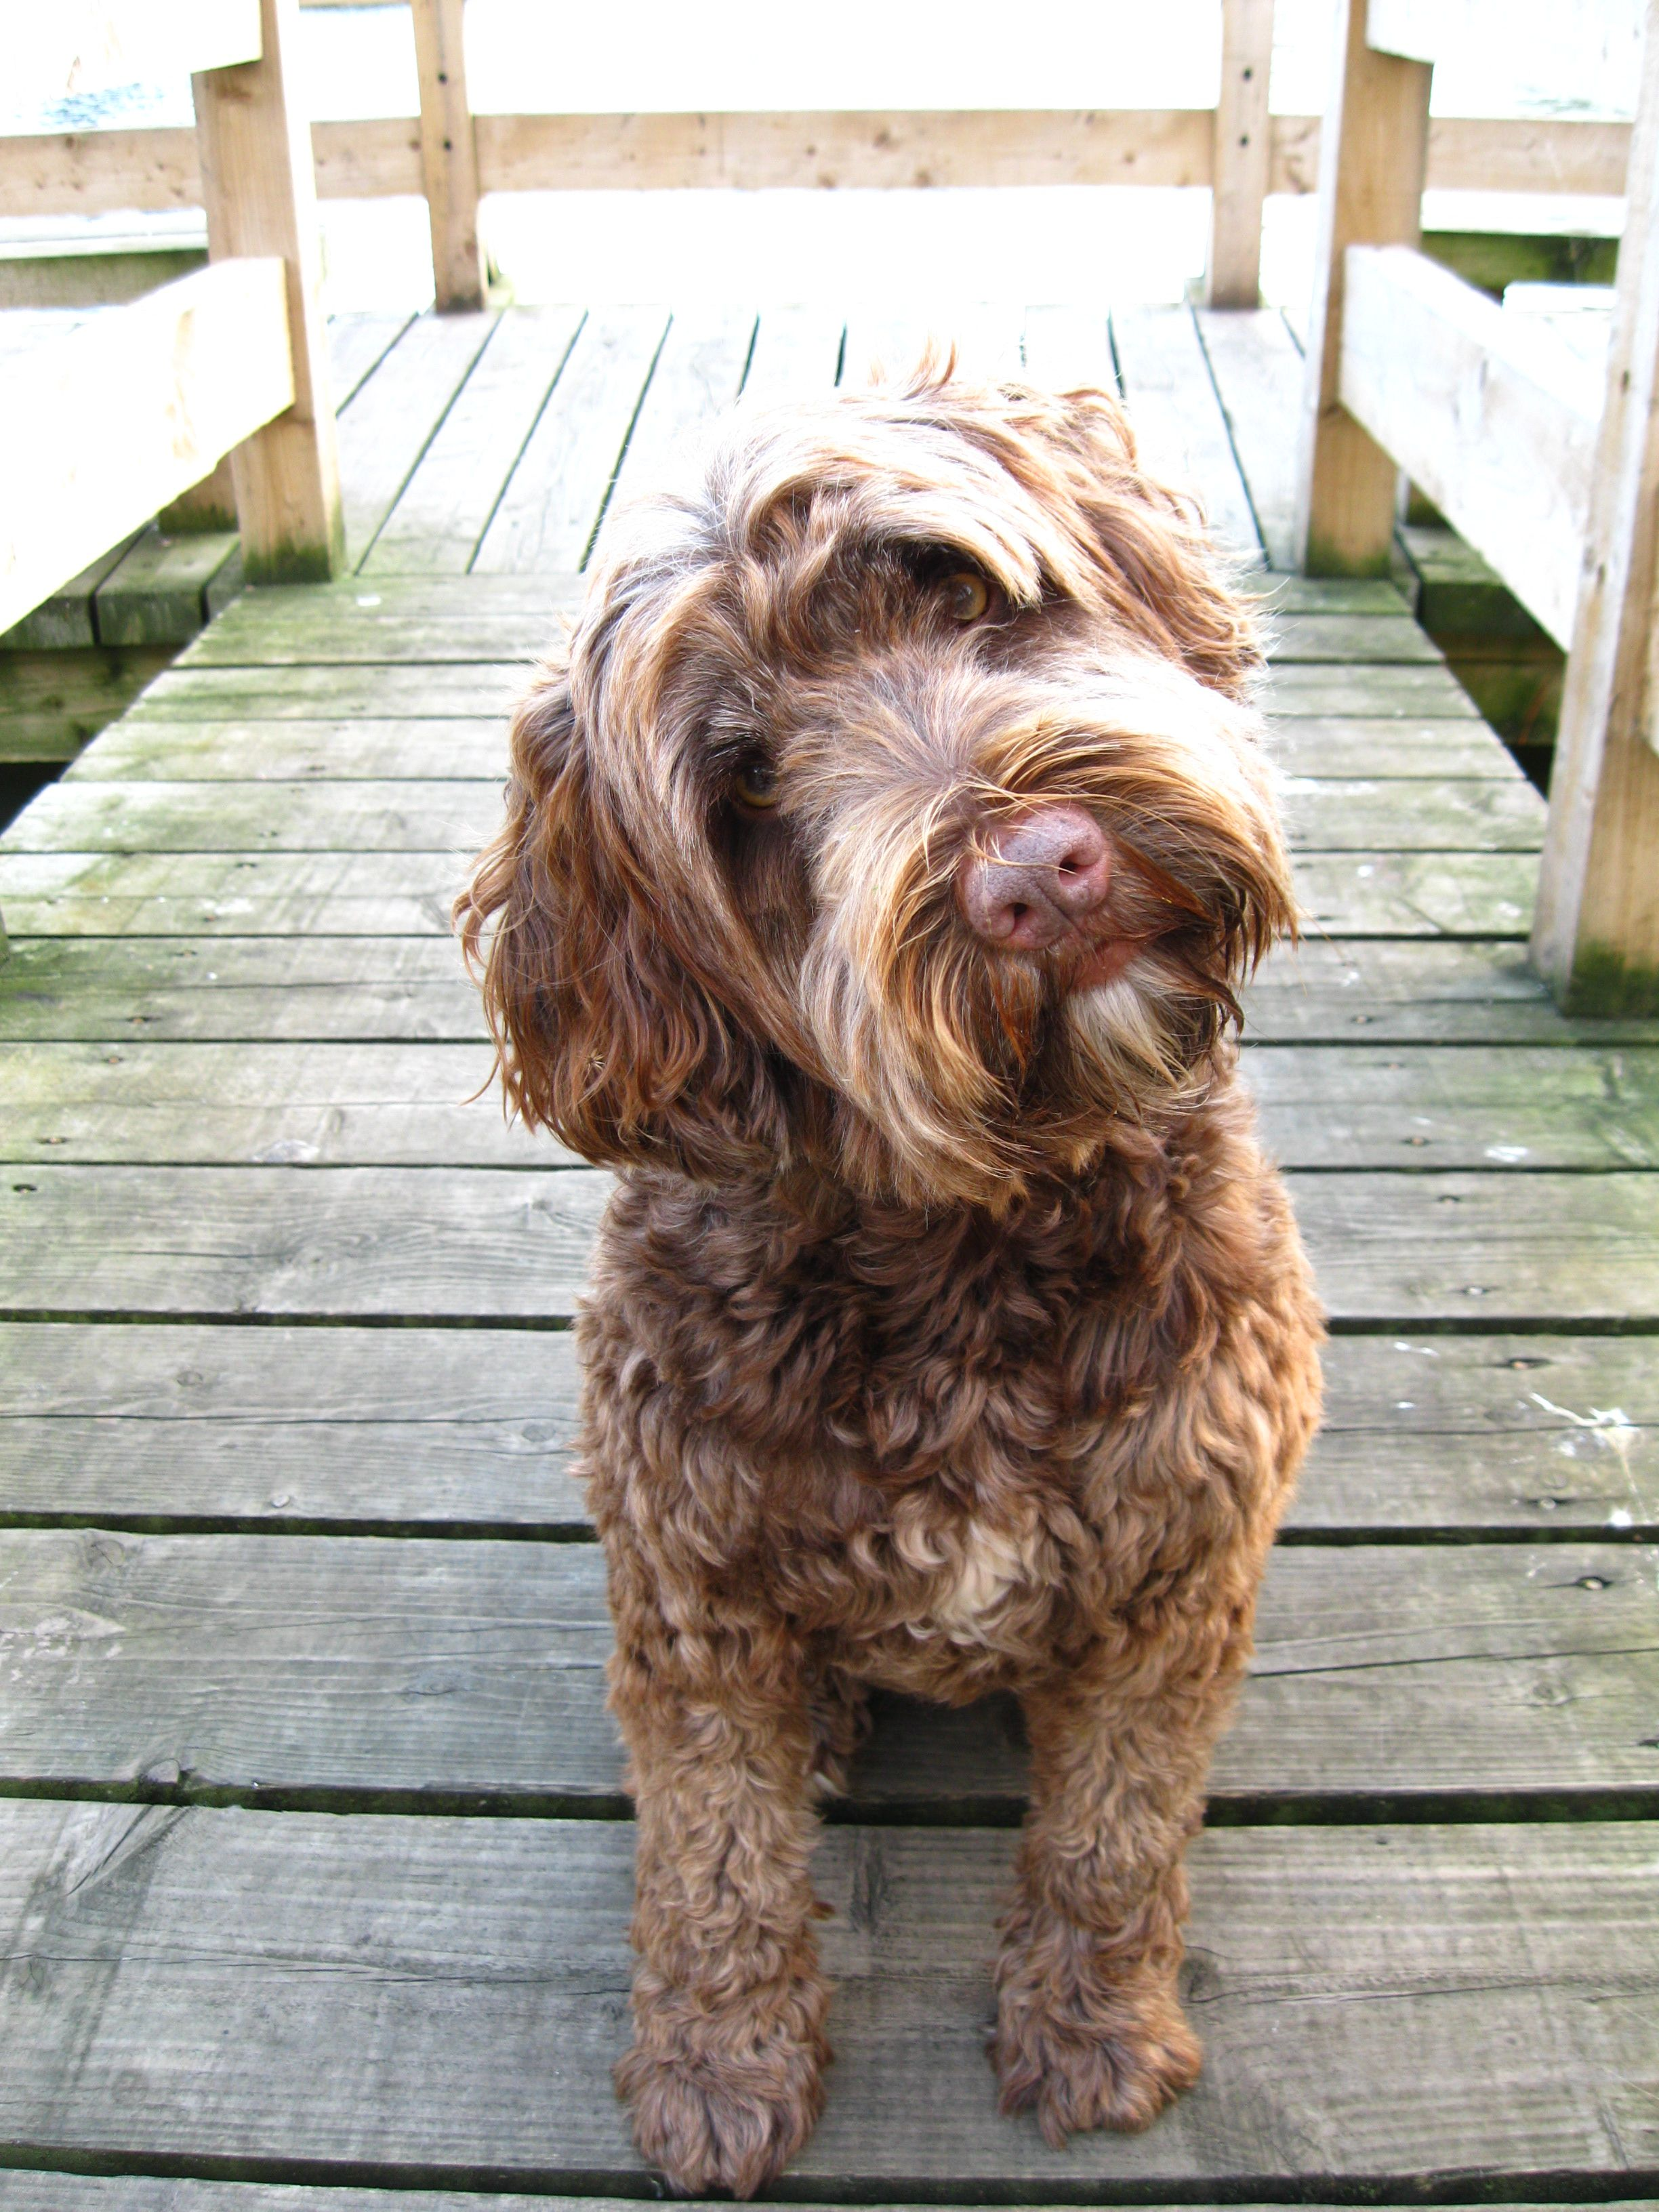 Portuguese Water Dog How Much Is That Doggie In The